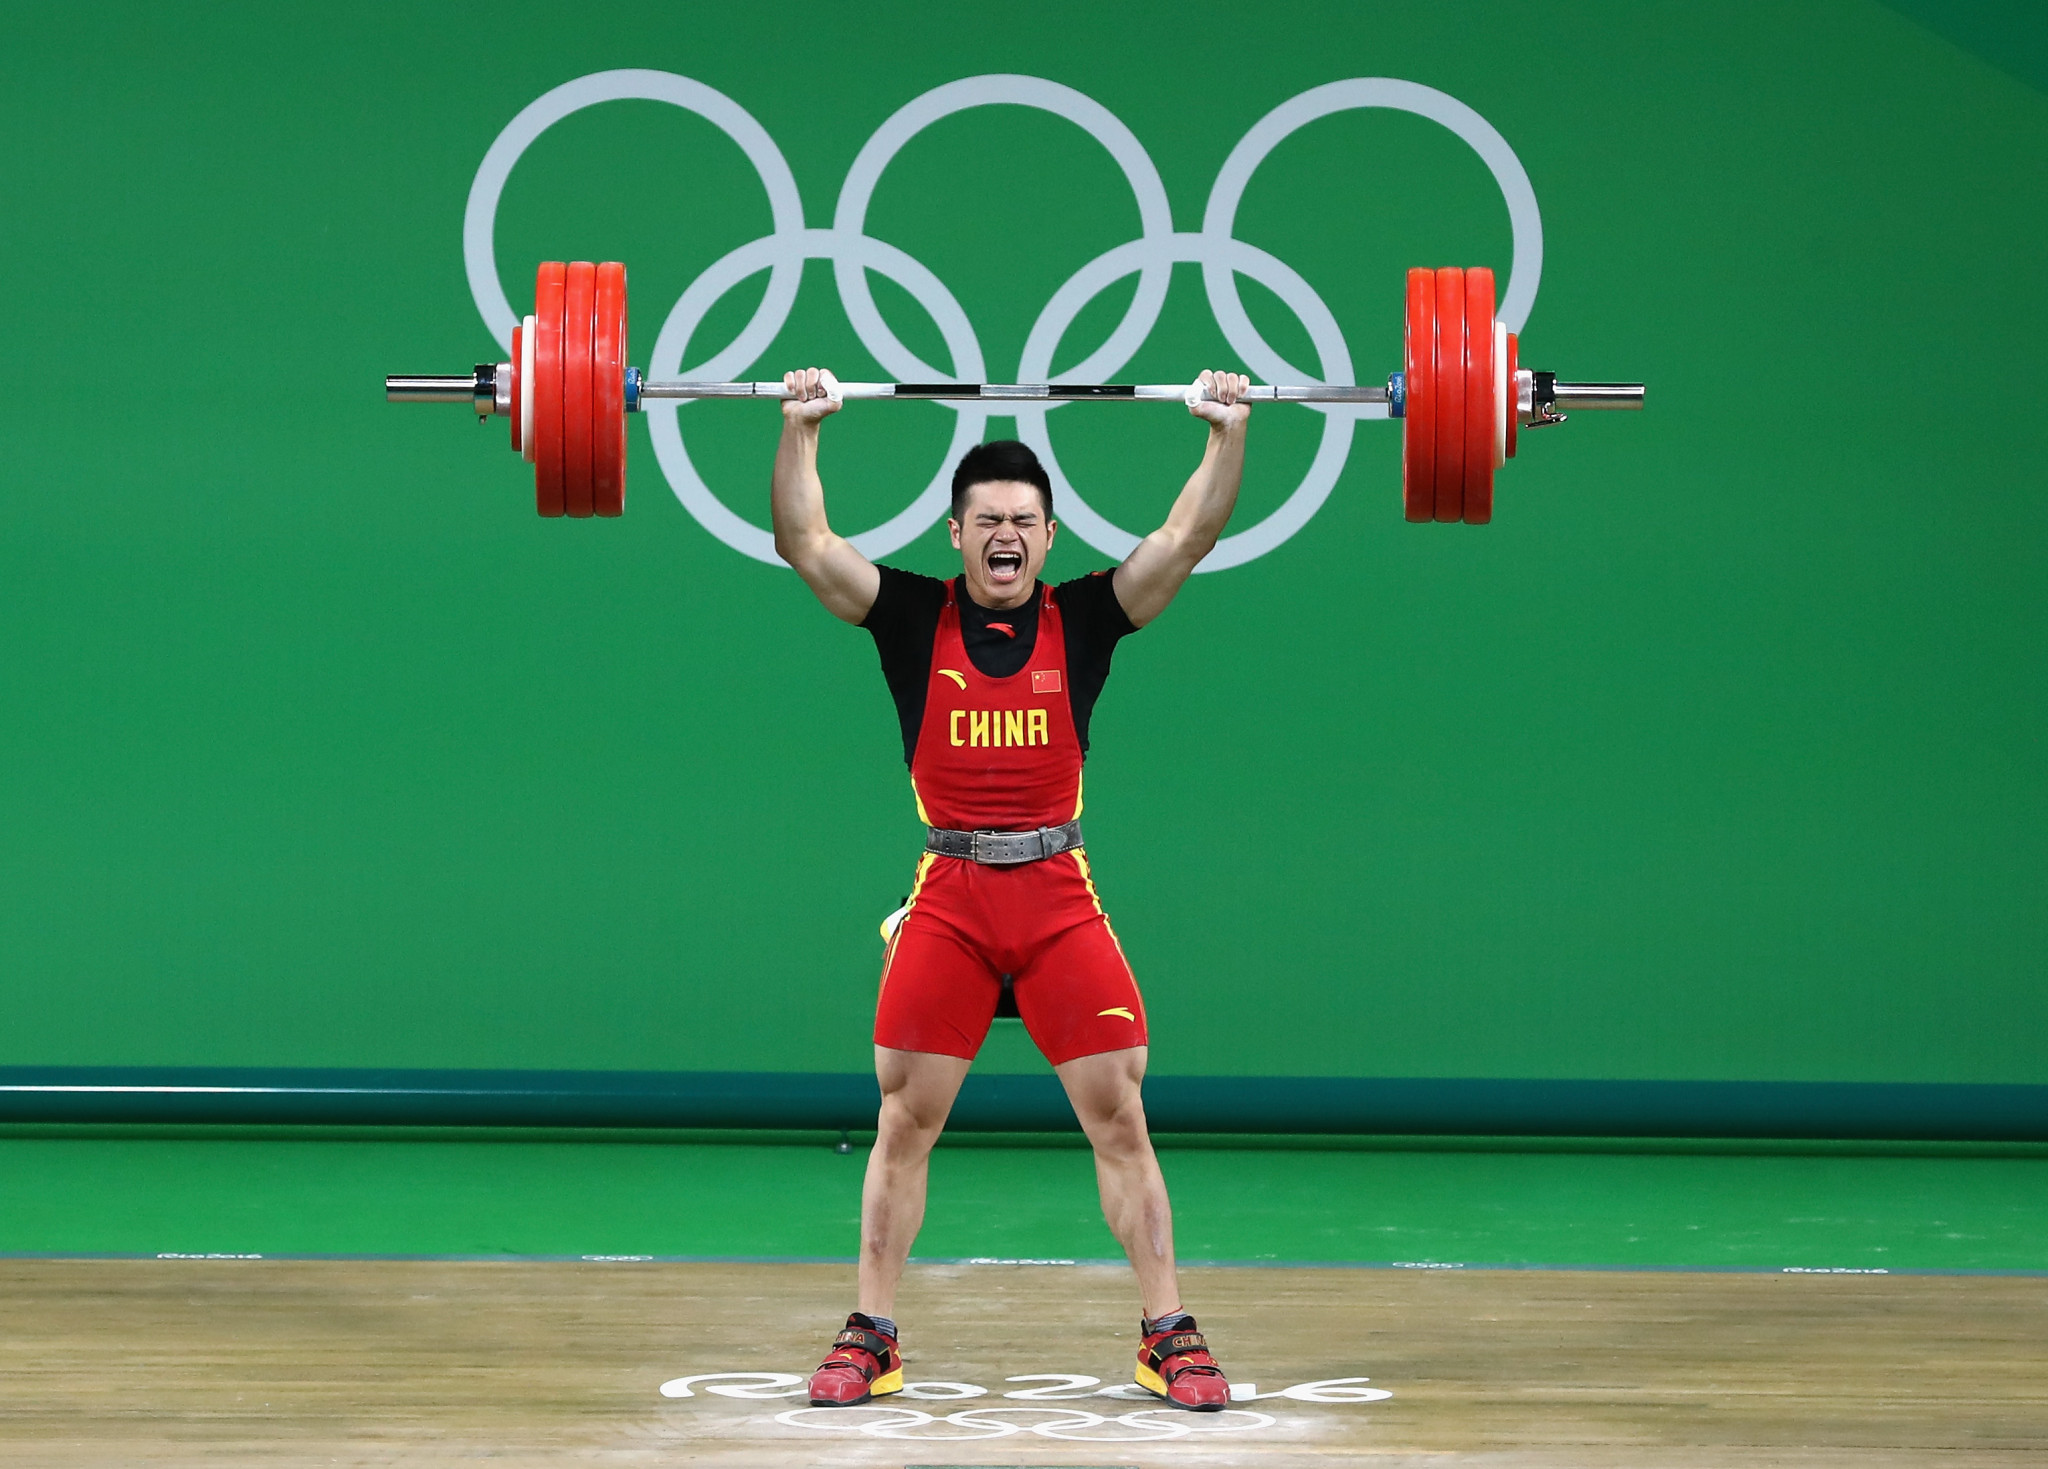 china barred from weightlifting at 2018 asian games after oca vow to